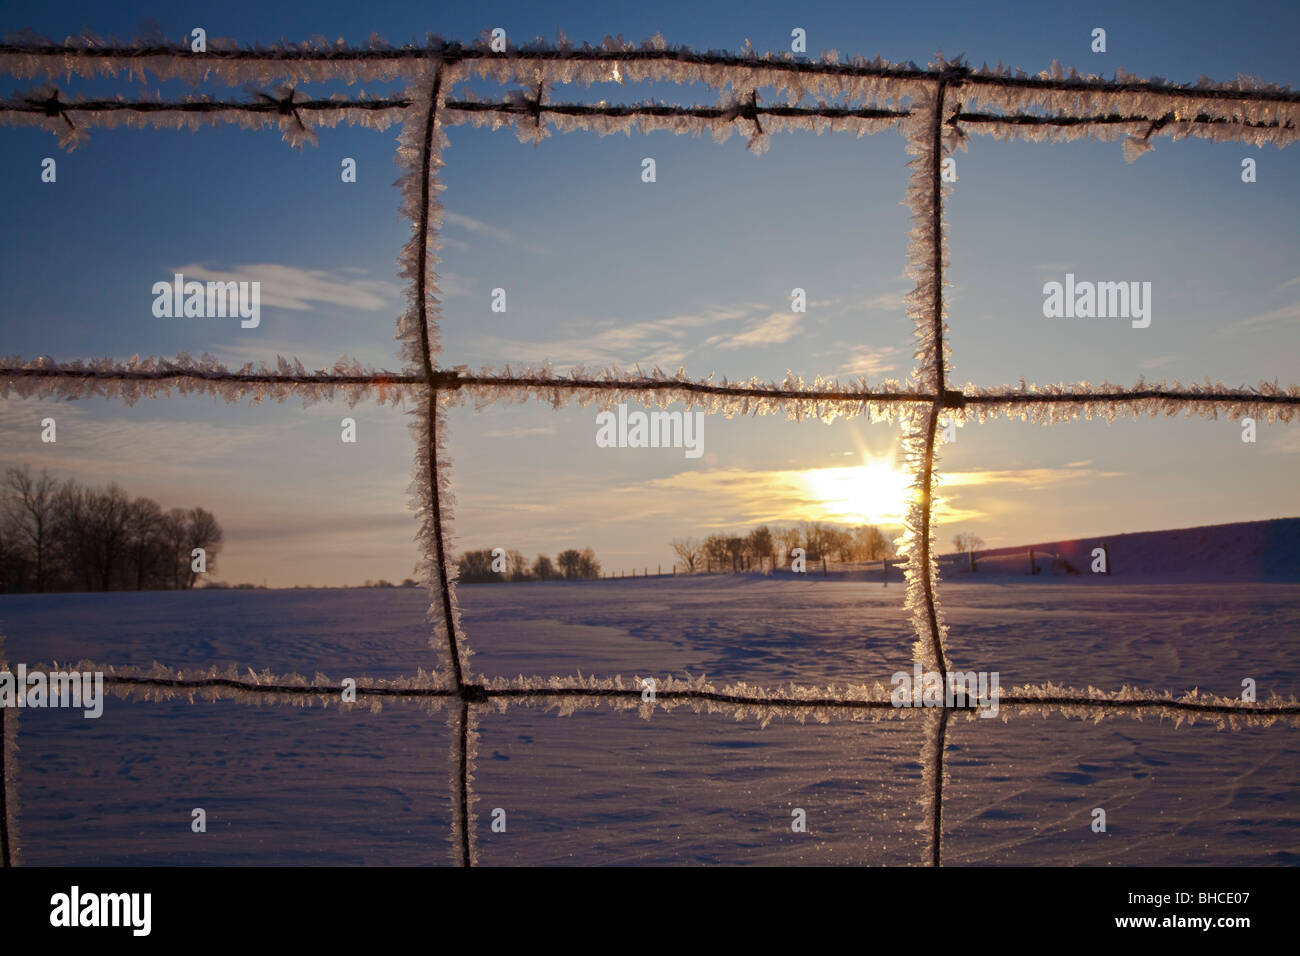 New Palestine, Indiana - Frost on a farm fence at sunrise. - Stock Image